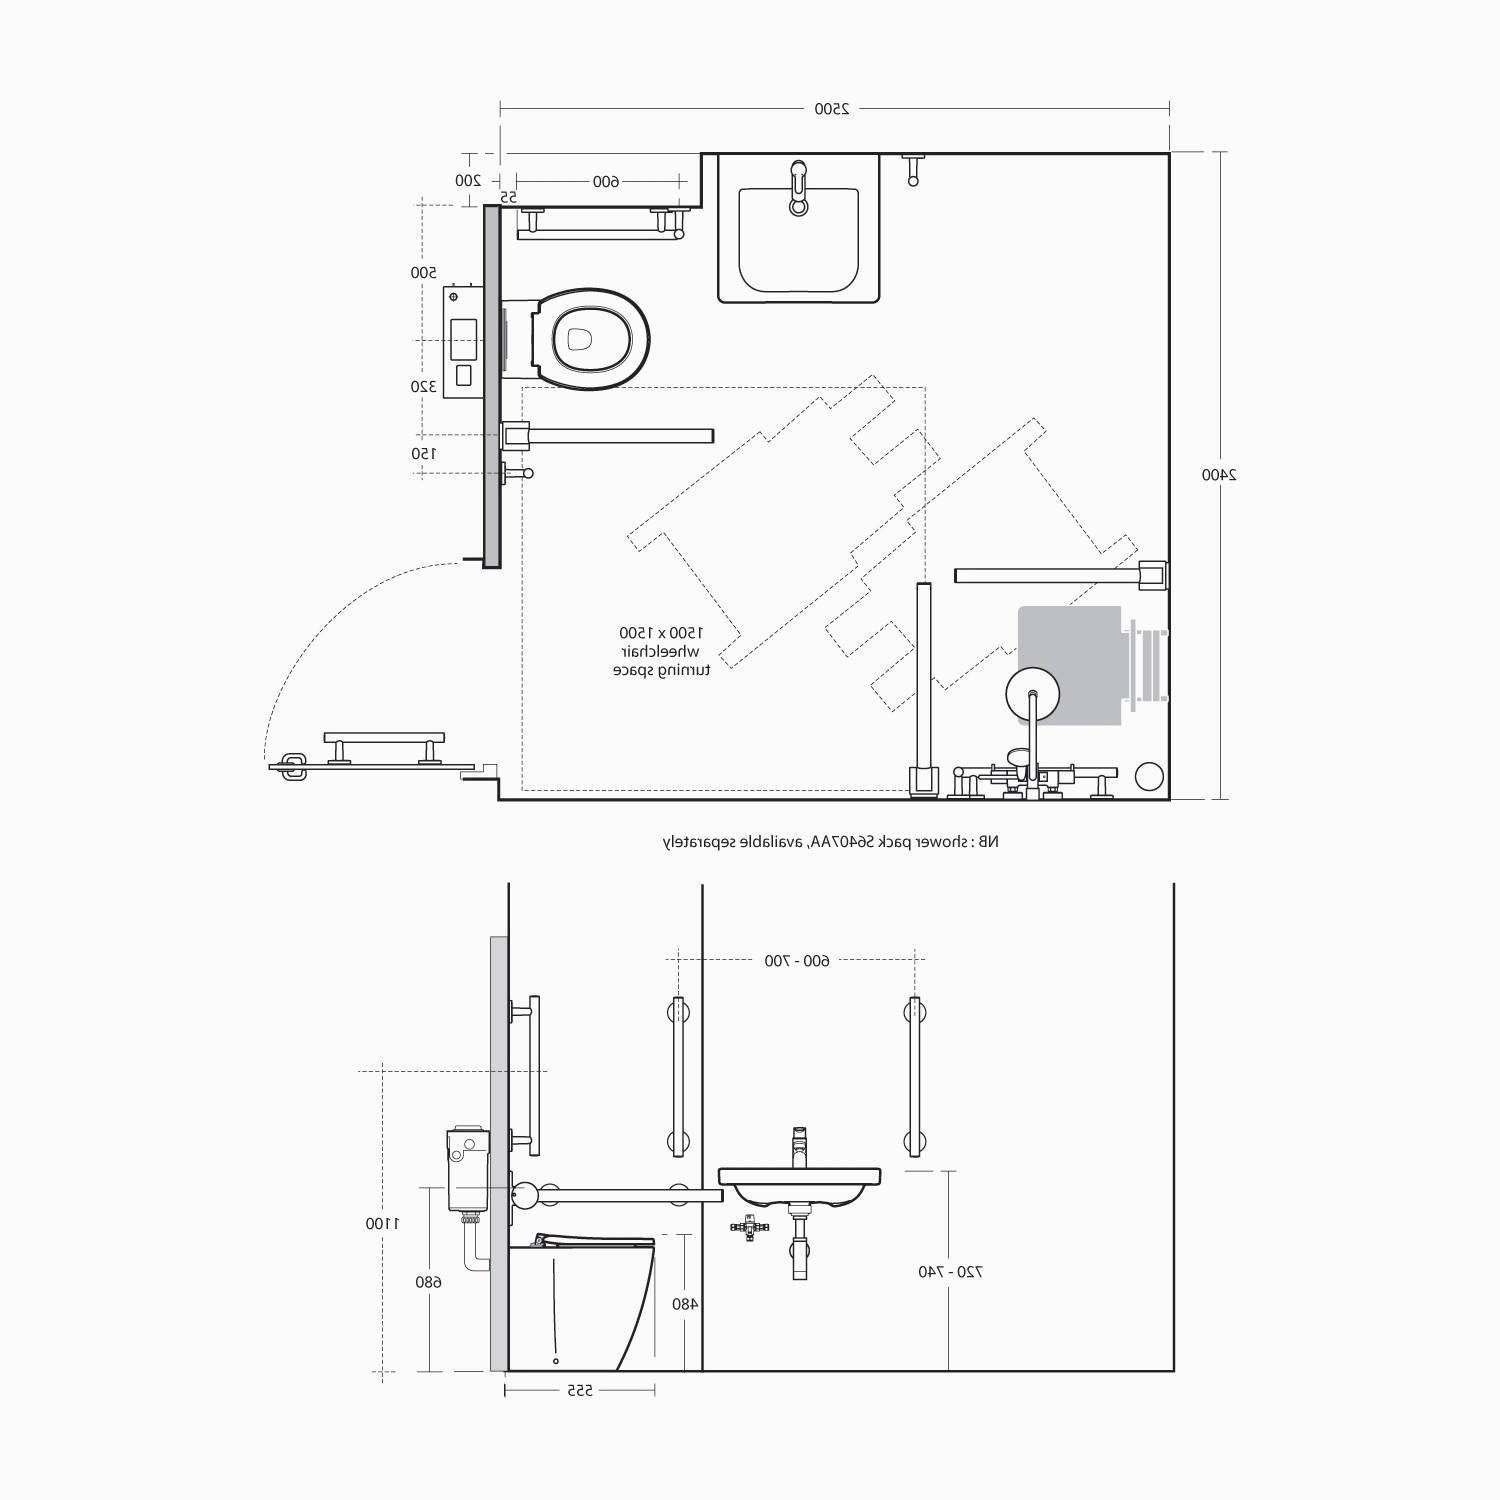 square vases bulk of dsc floor plan bulk wedding decorations dsc h vases square intended for dsc floor plan bulk wedding decorations dsc h vases square centerpiece dsc i 0d